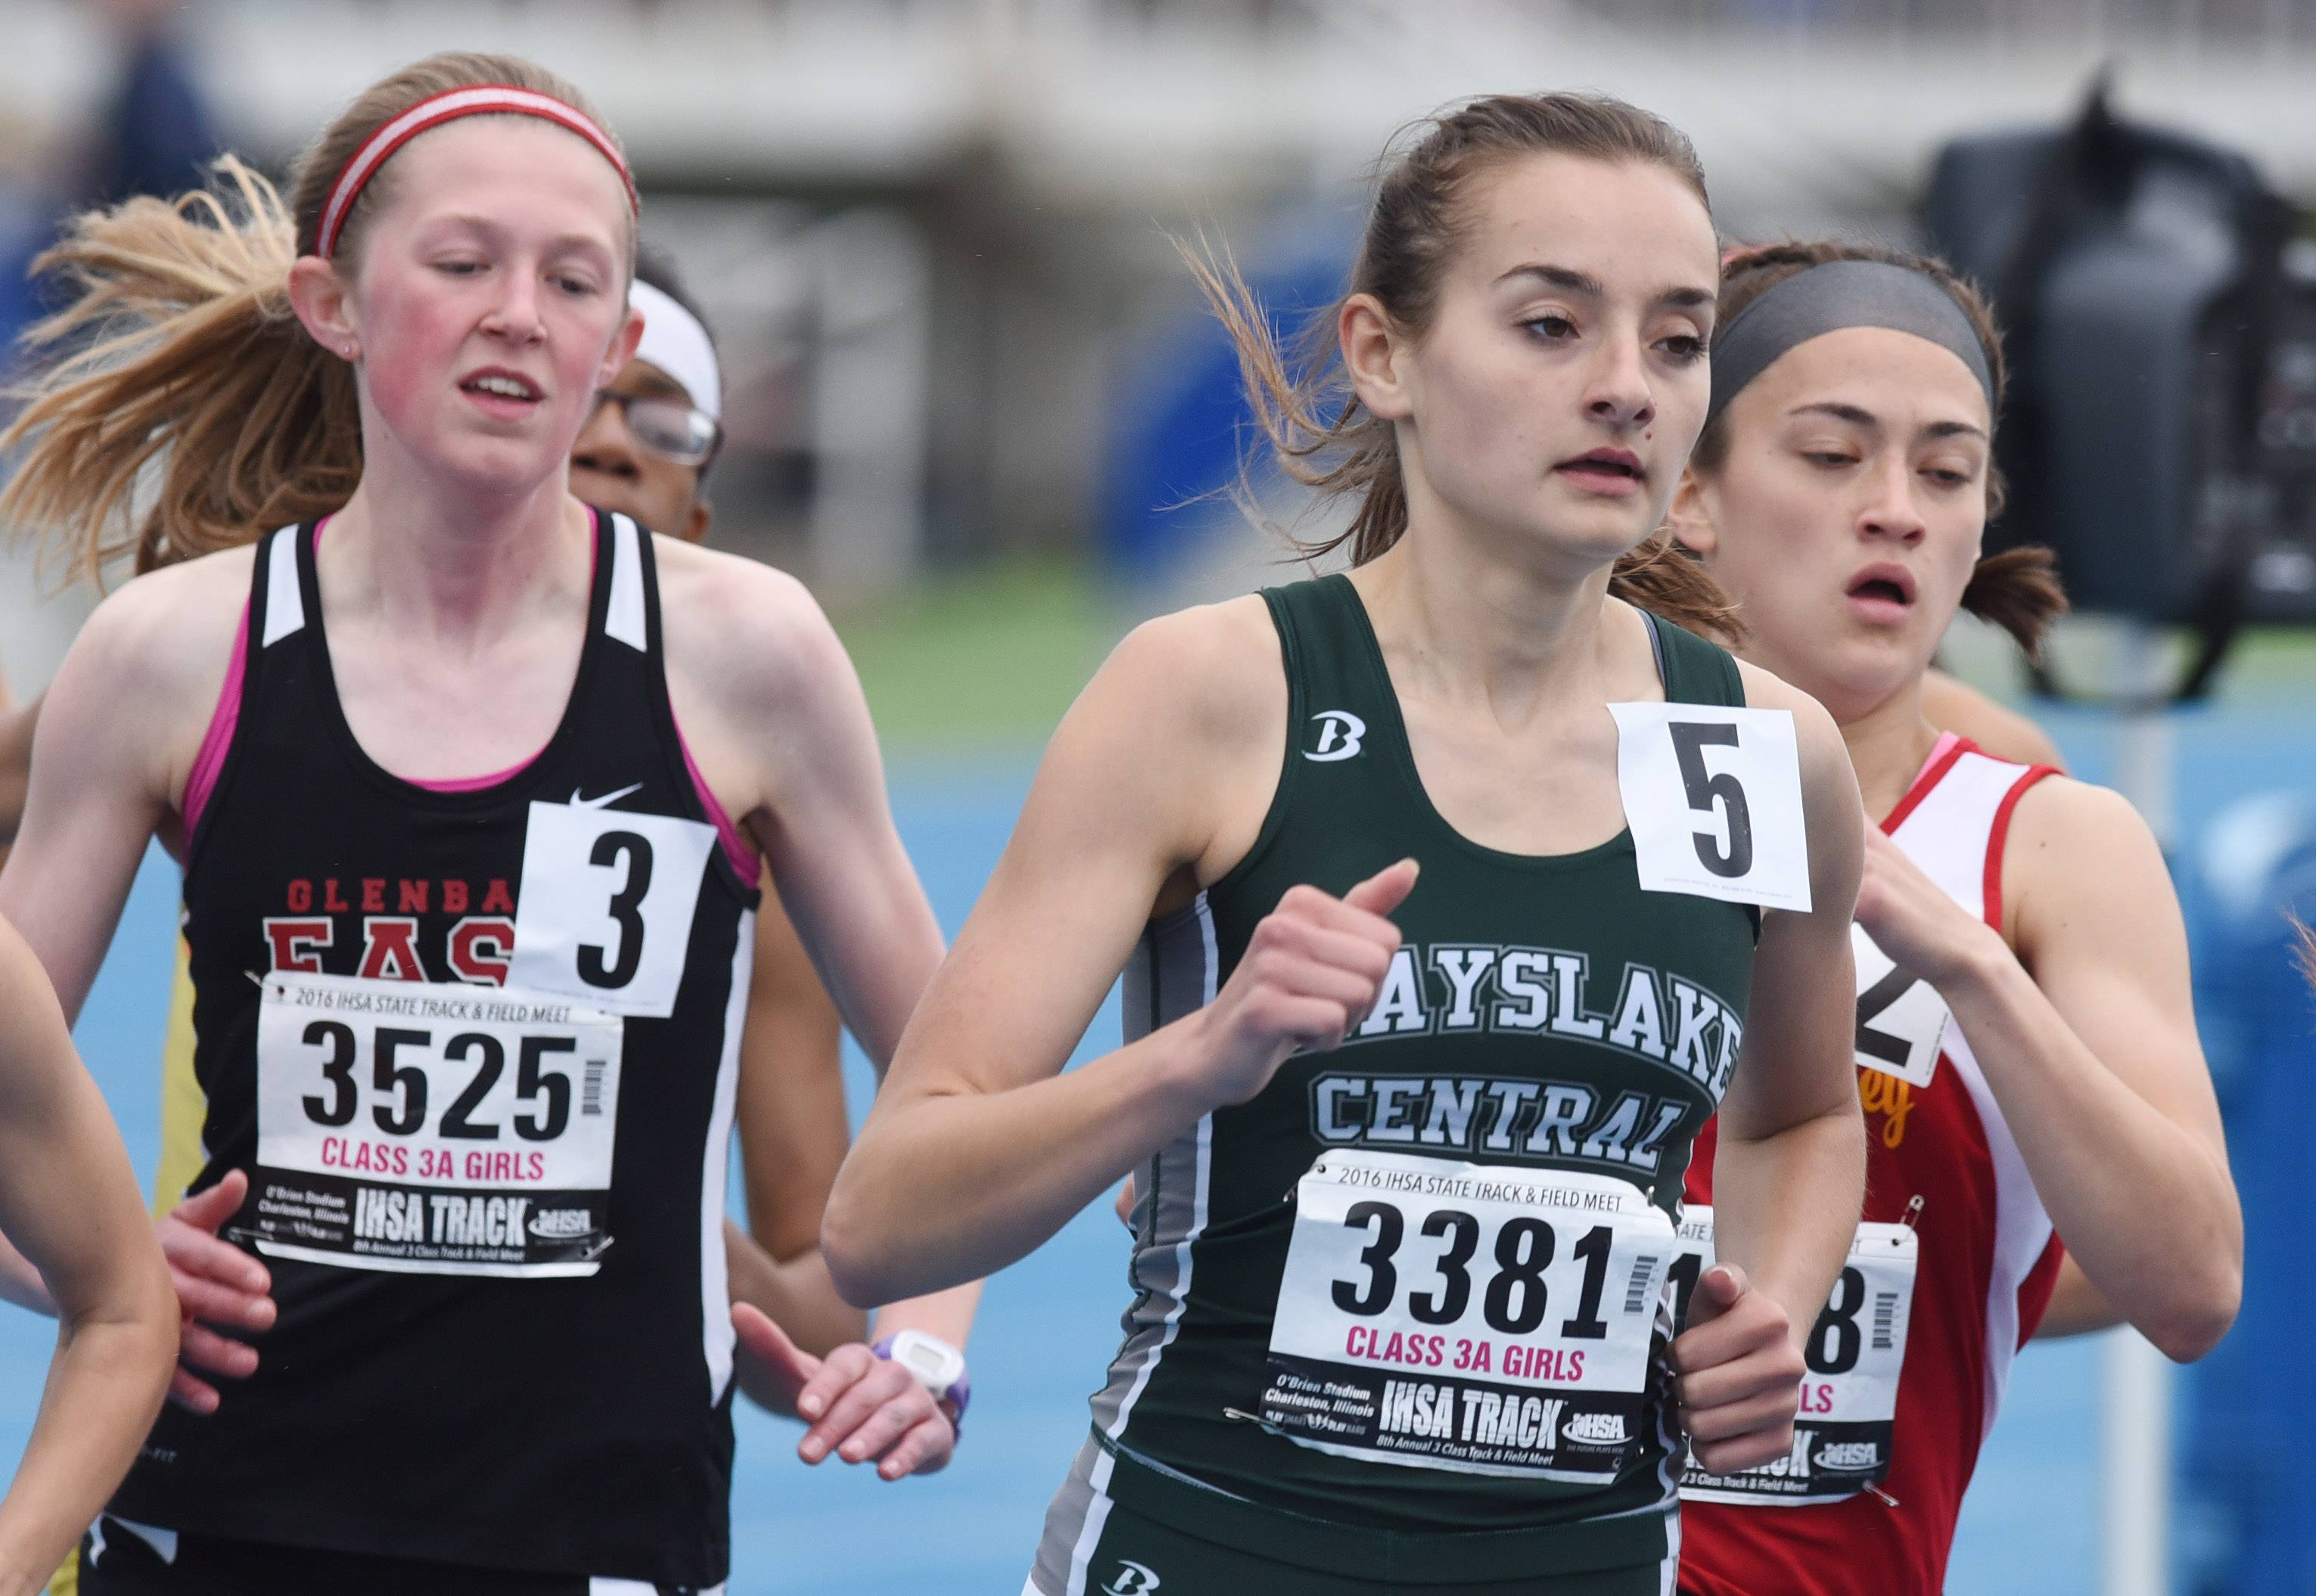 Grayslake Central's Sara O'Malley is in the middle of the pack during heat one of the 800-meter run during the Class 3A girls track and field state meet preliminaries in Charleston on Friday.